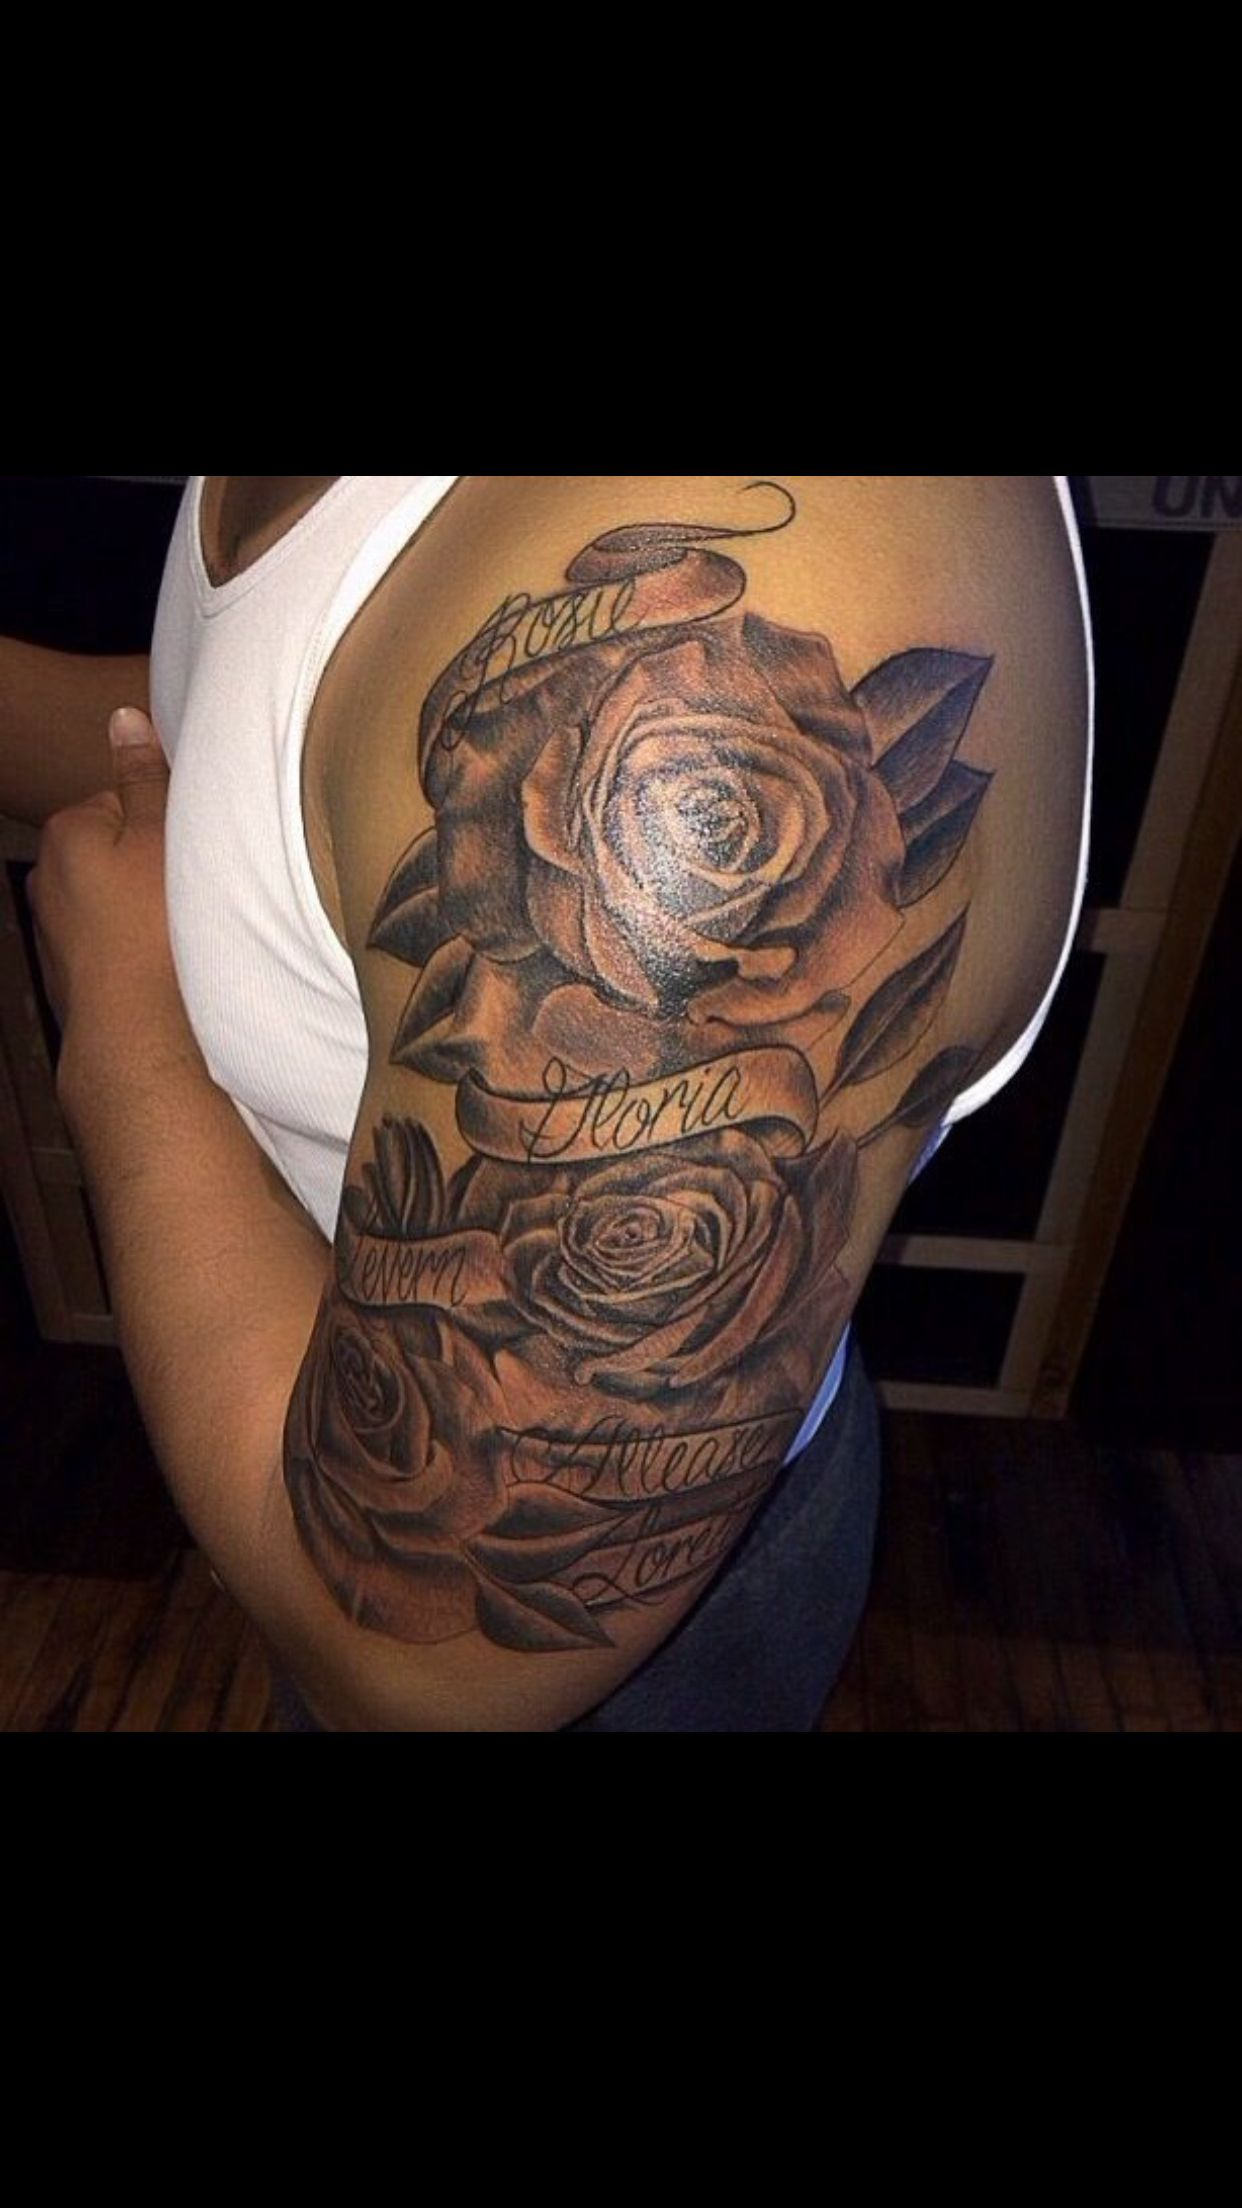 Arm Tattoos For Men With Kids Names Best Tattoo Ideas